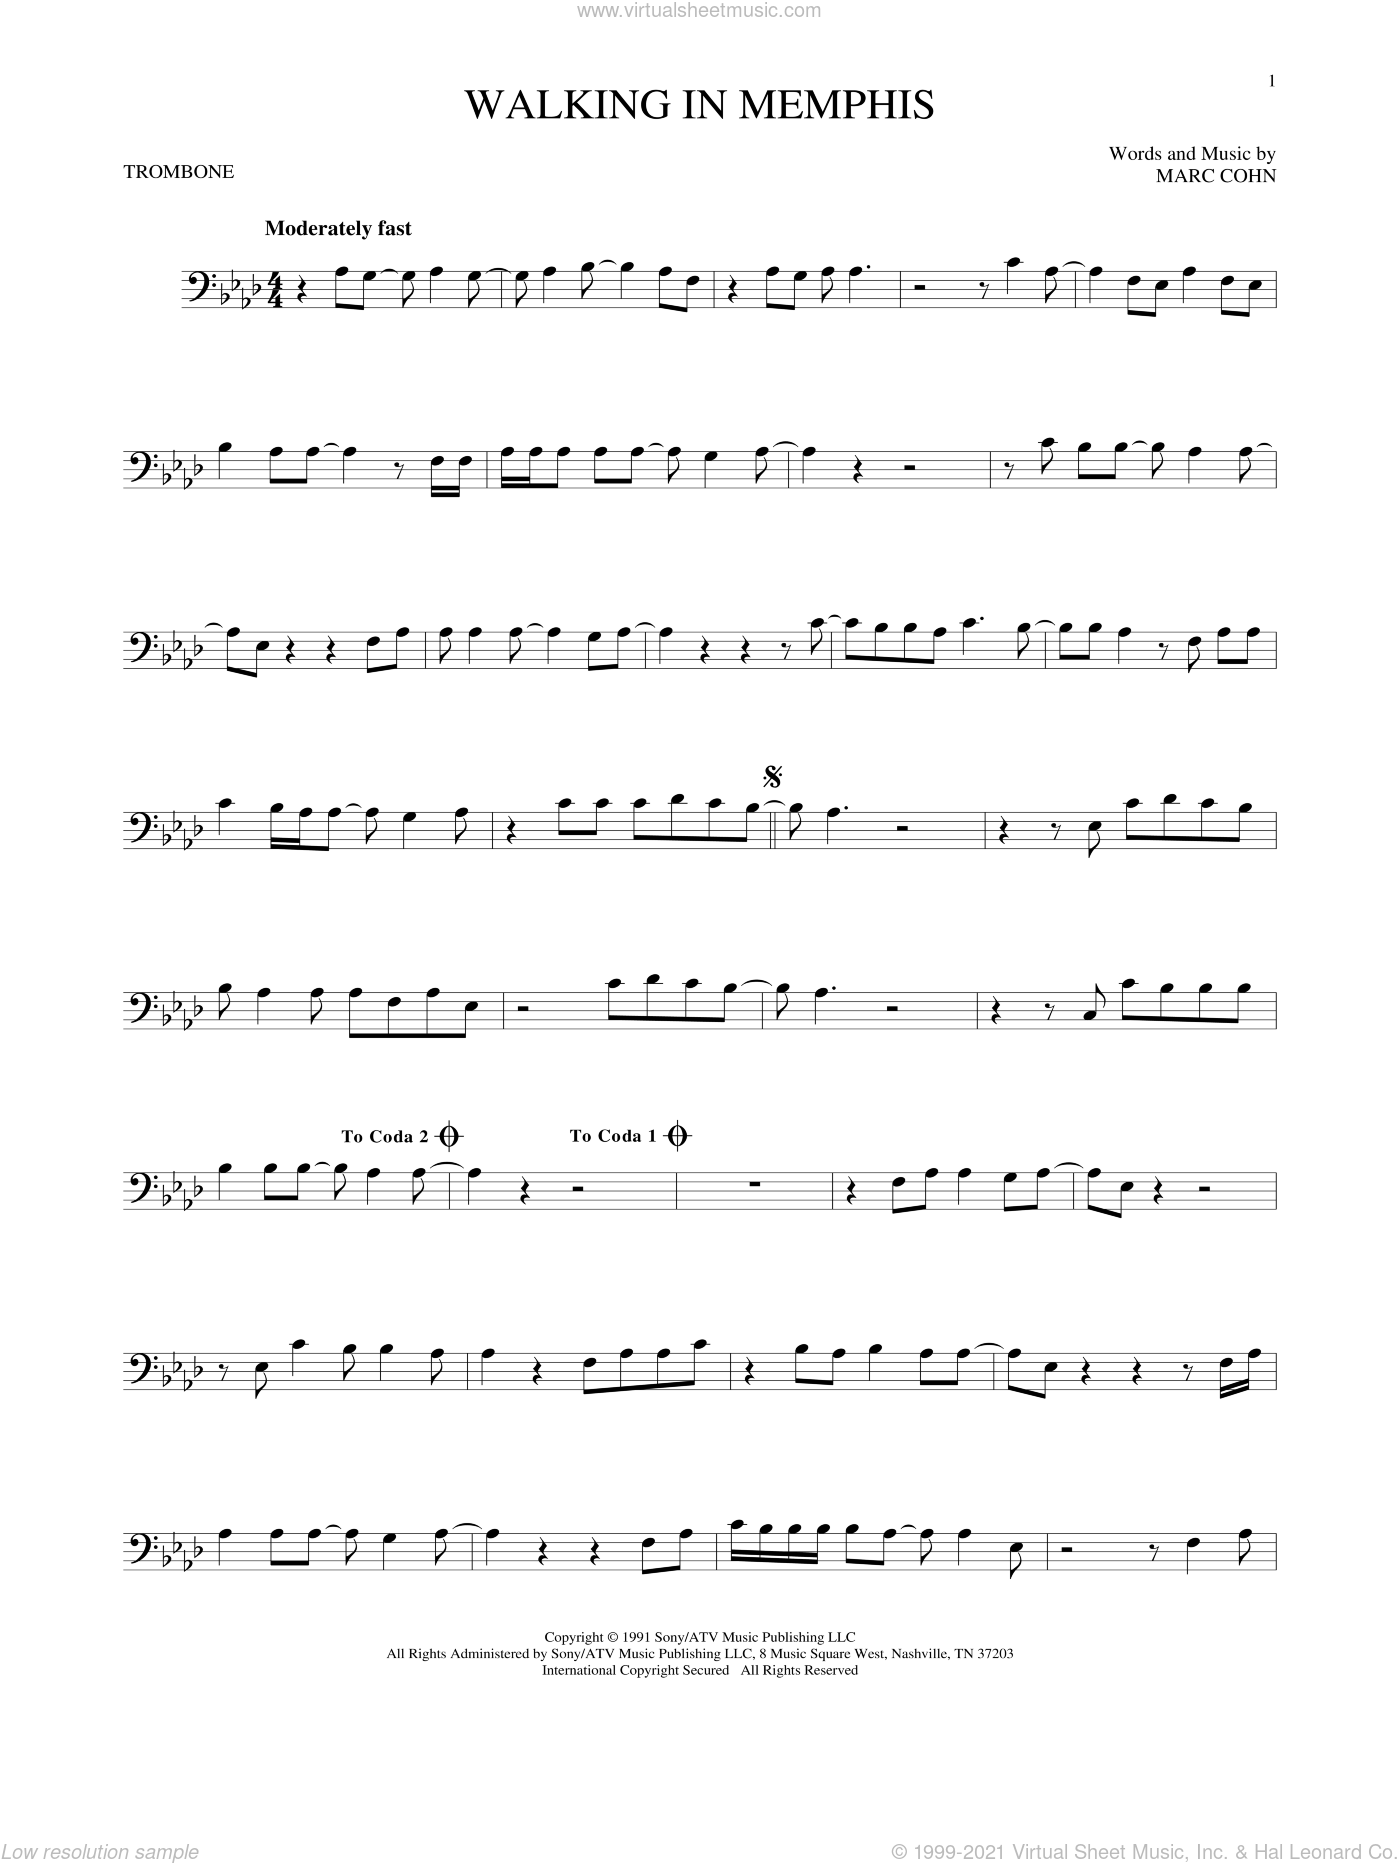 Walking In Memphis sheet music for trombone solo by Marc Cohn and Lonestar, intermediate skill level